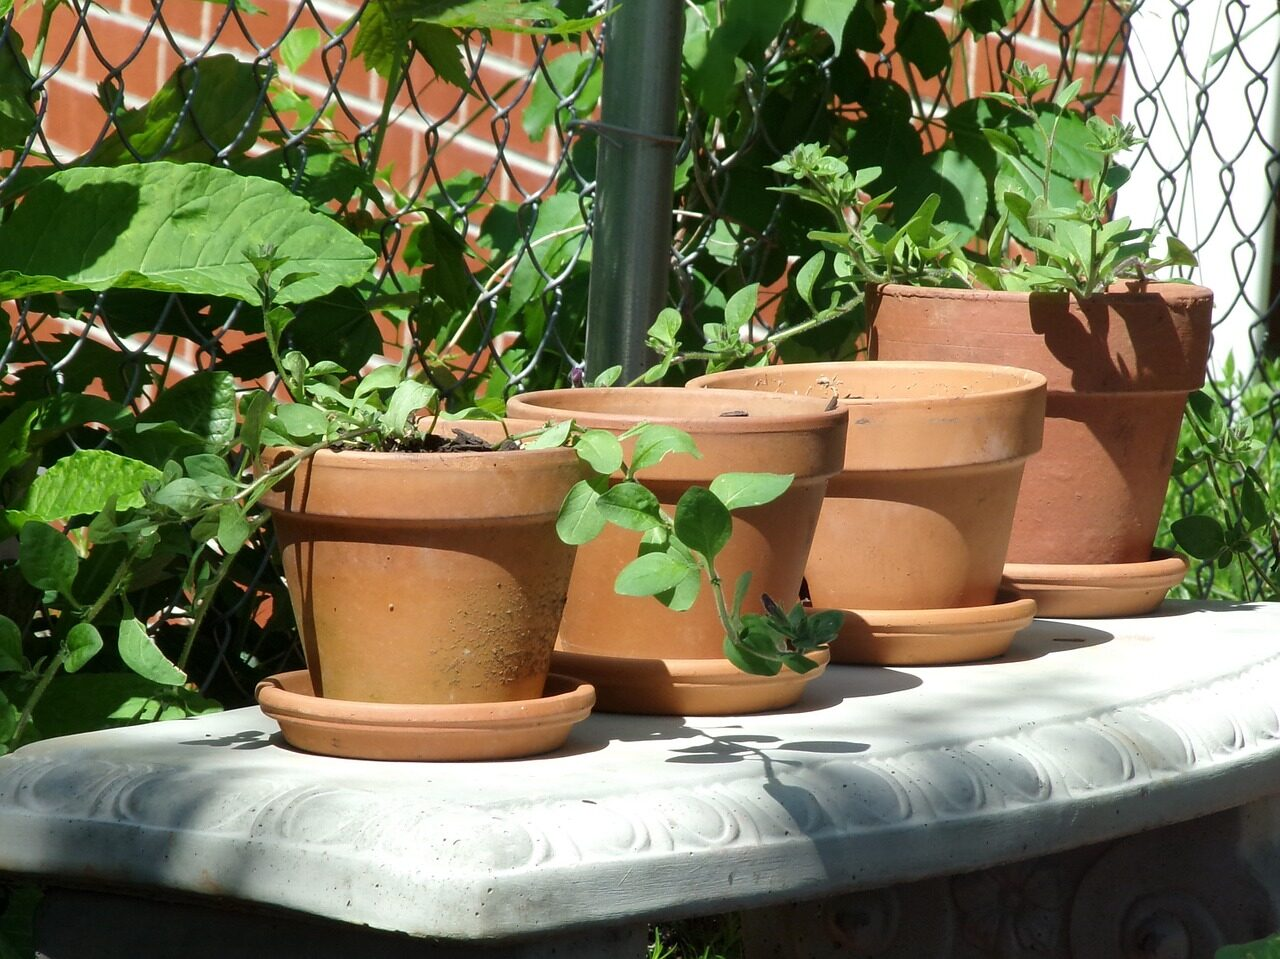 Clay Terracotta pots on a stone bench